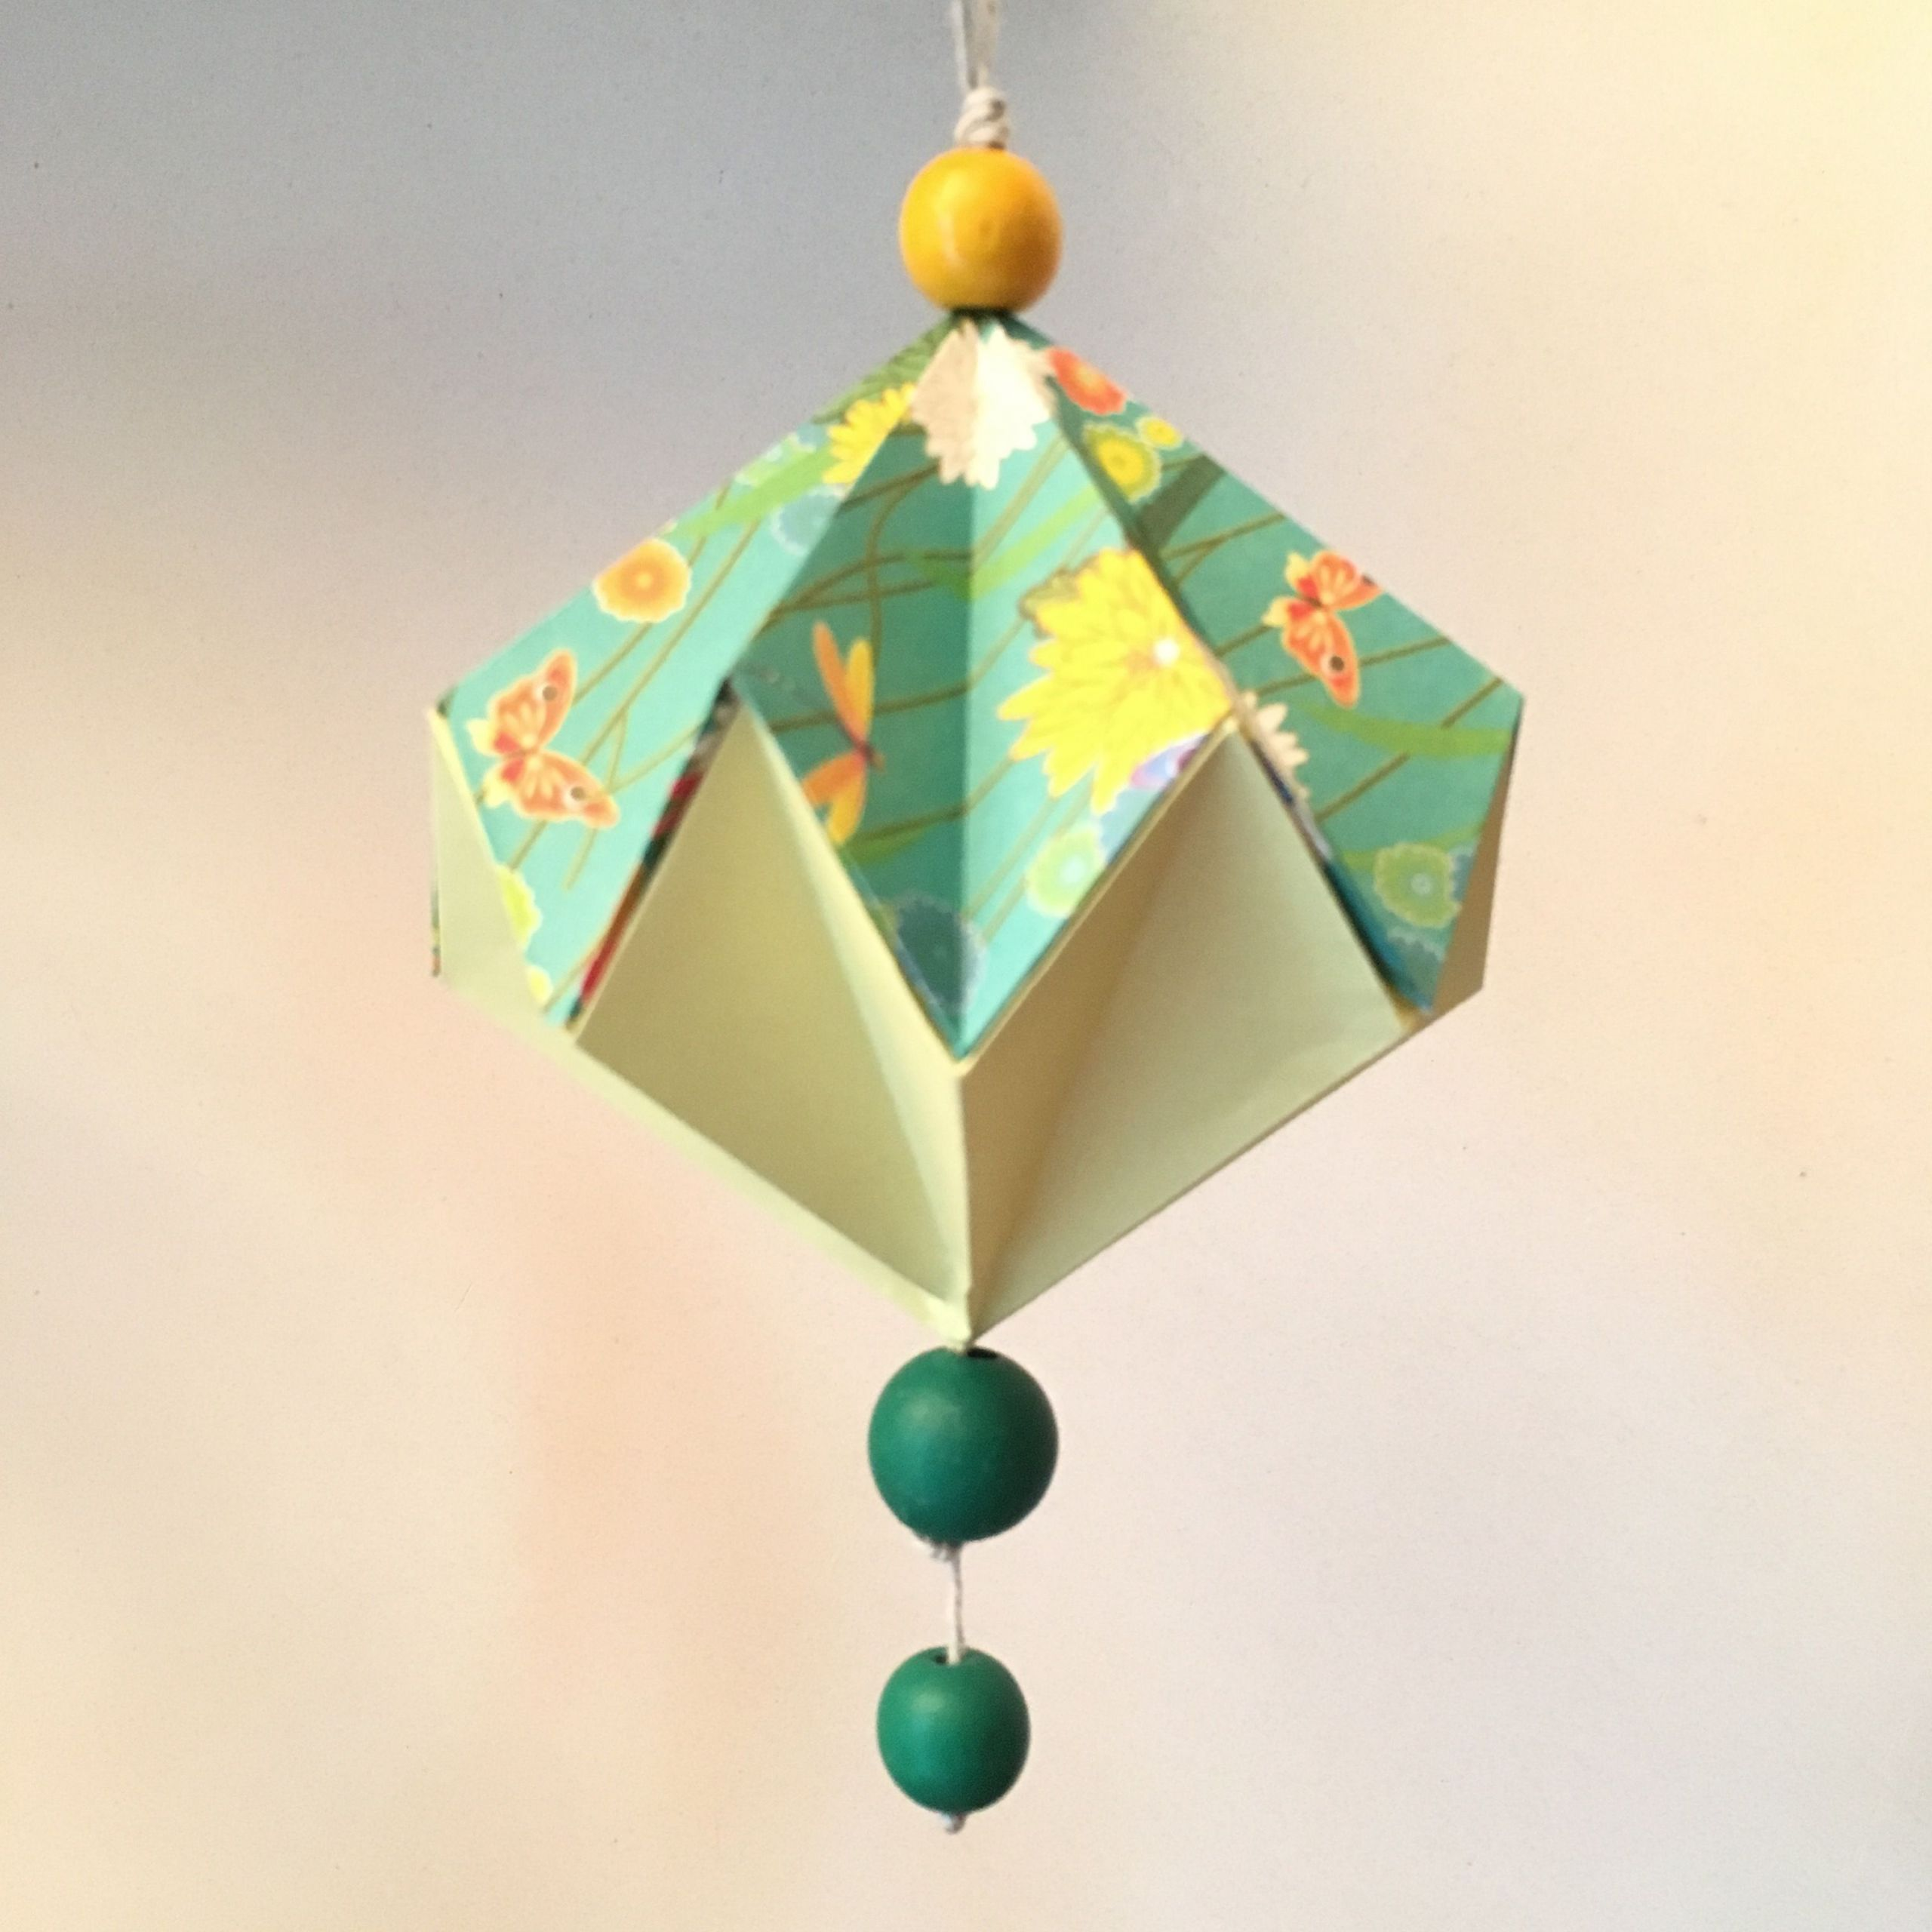 Bricolage Discount Luxe atelier Diy origami by Le Panda Rose Of 28 Nouveau Bricolage Discount